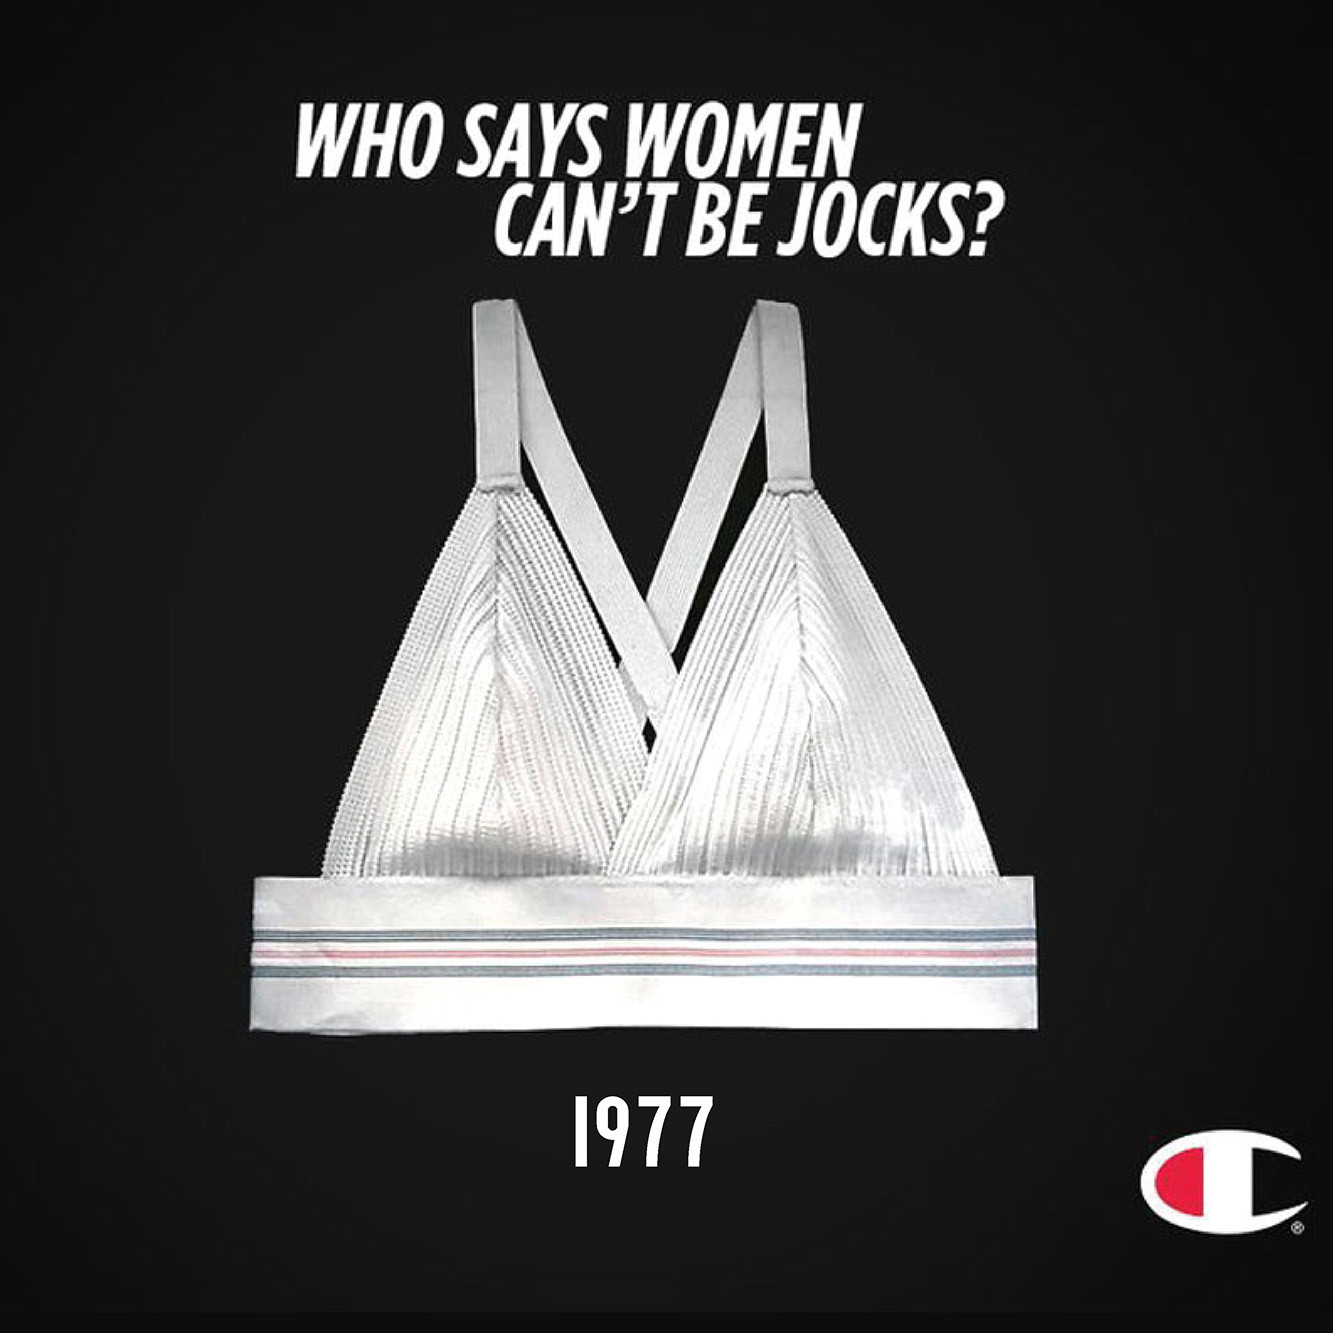 36ffac2277cf8 The first sports bra was two jock straps stitched together by Lisa Lindahl  and Polly Smith